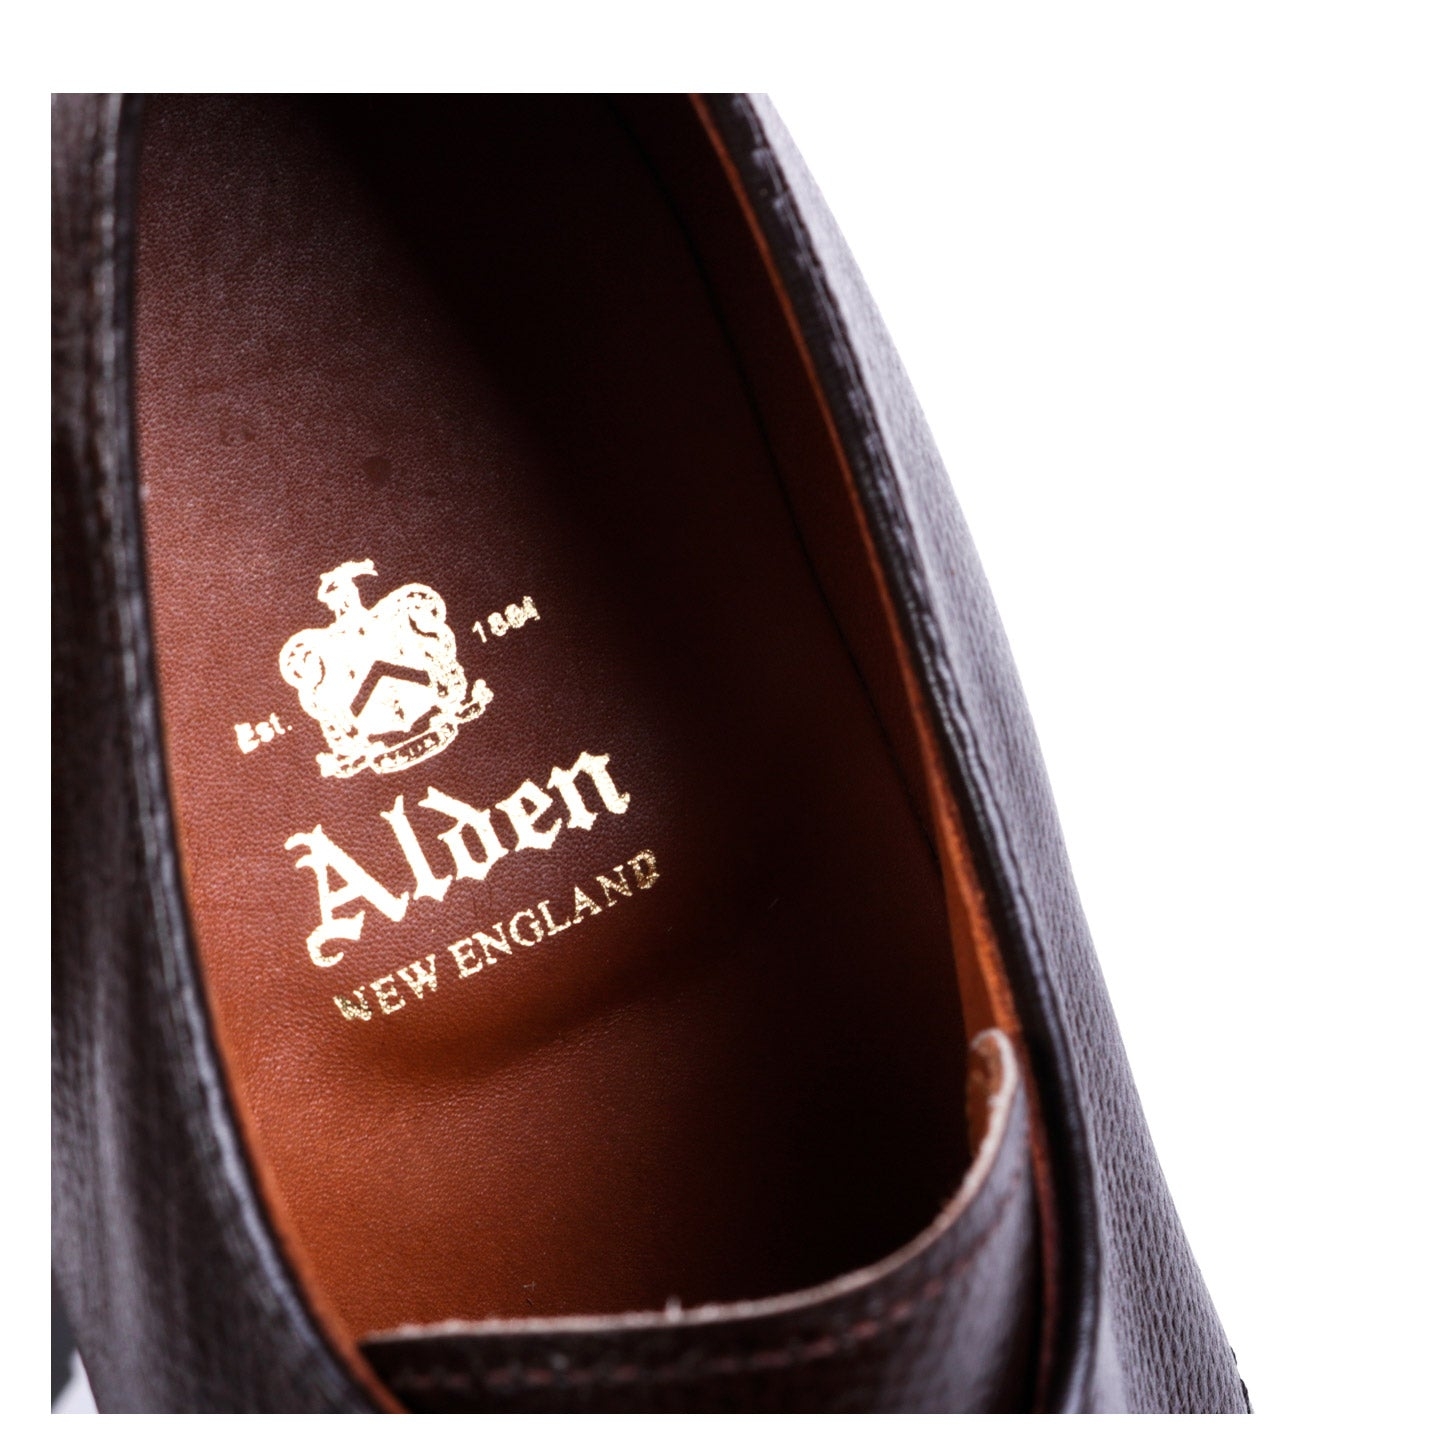 ALDEN 941C DUTTON 3 EYE BLUCHER OX DARK BROWN ALPINE GRAIN CALF